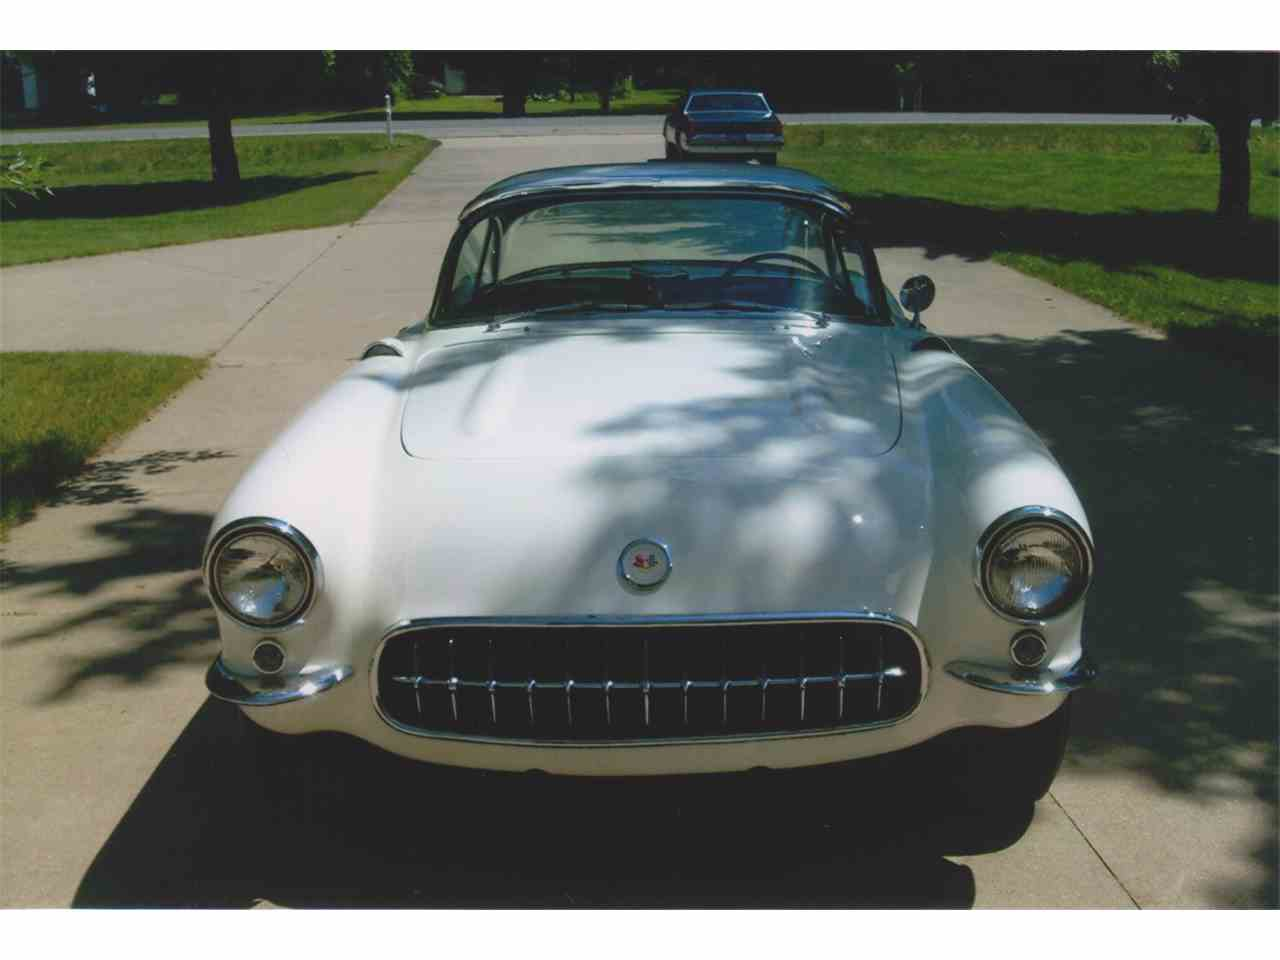 Large Picture of '57 Chevrolet Corvette - $65,000.00 Offered by a Private Seller - LHW7